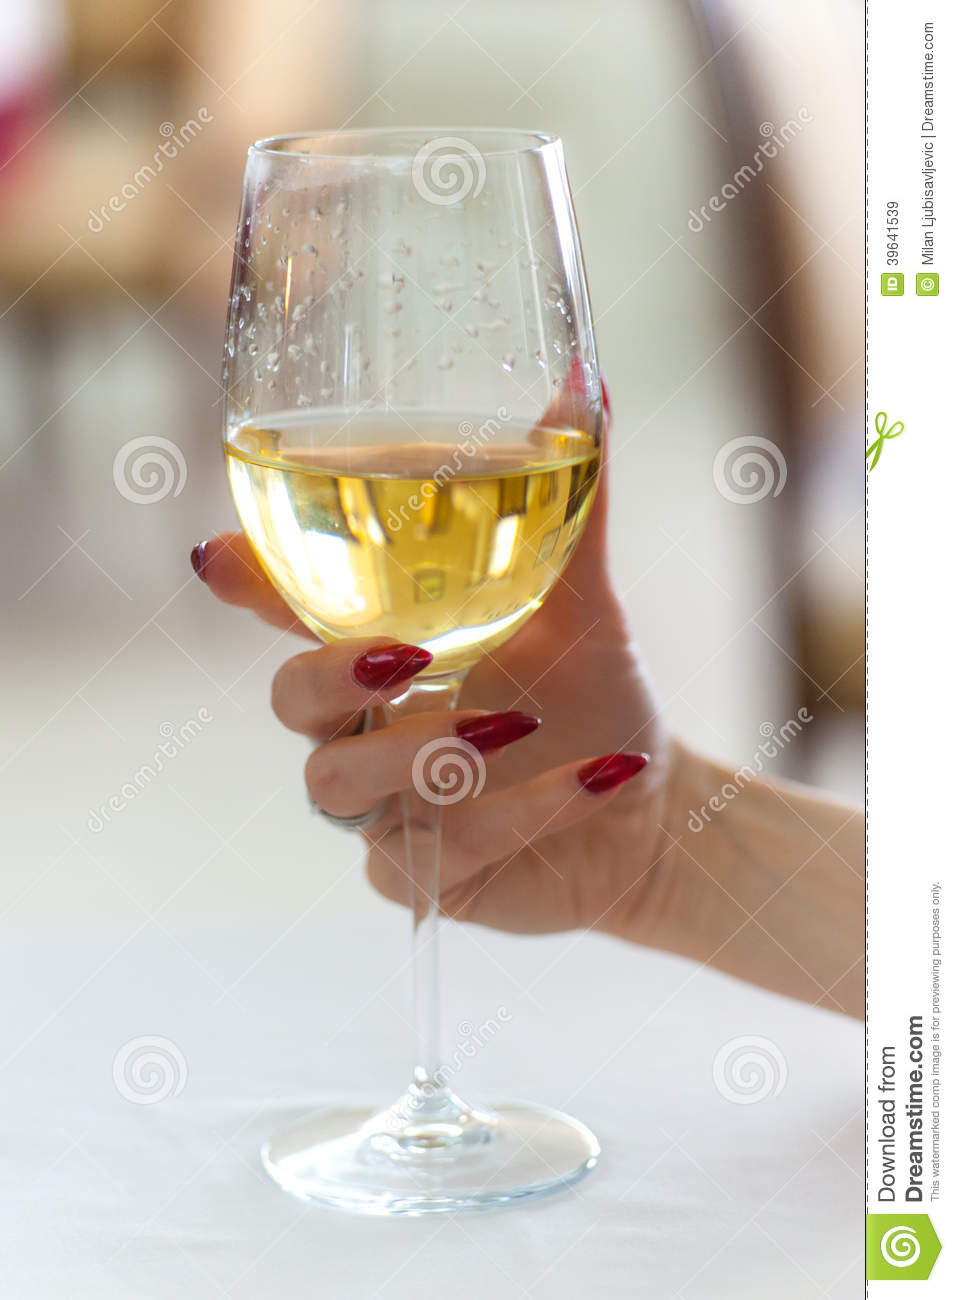 Womans Hand Holding Wine Glass Stock Image - Image: 39641539